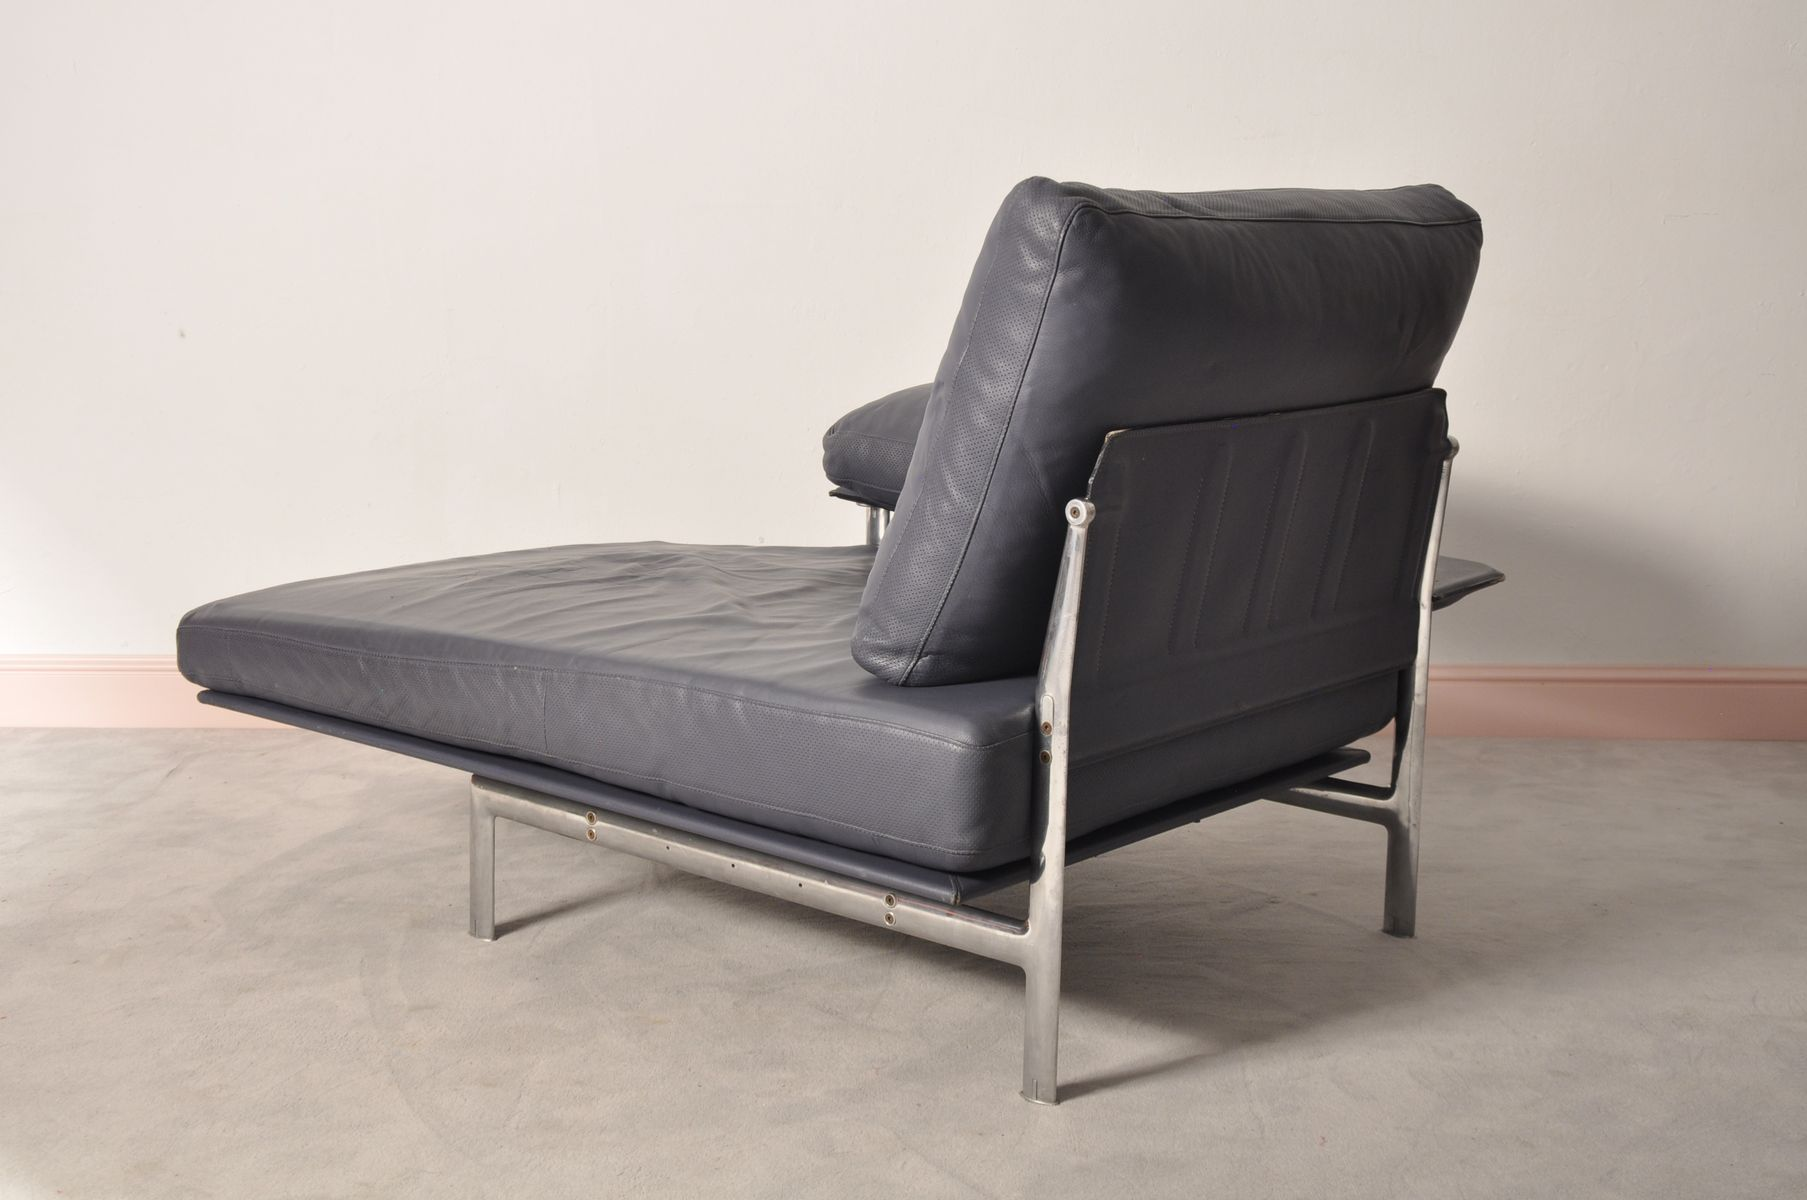 diesis chaise longue by paolo nava antonio citterio for